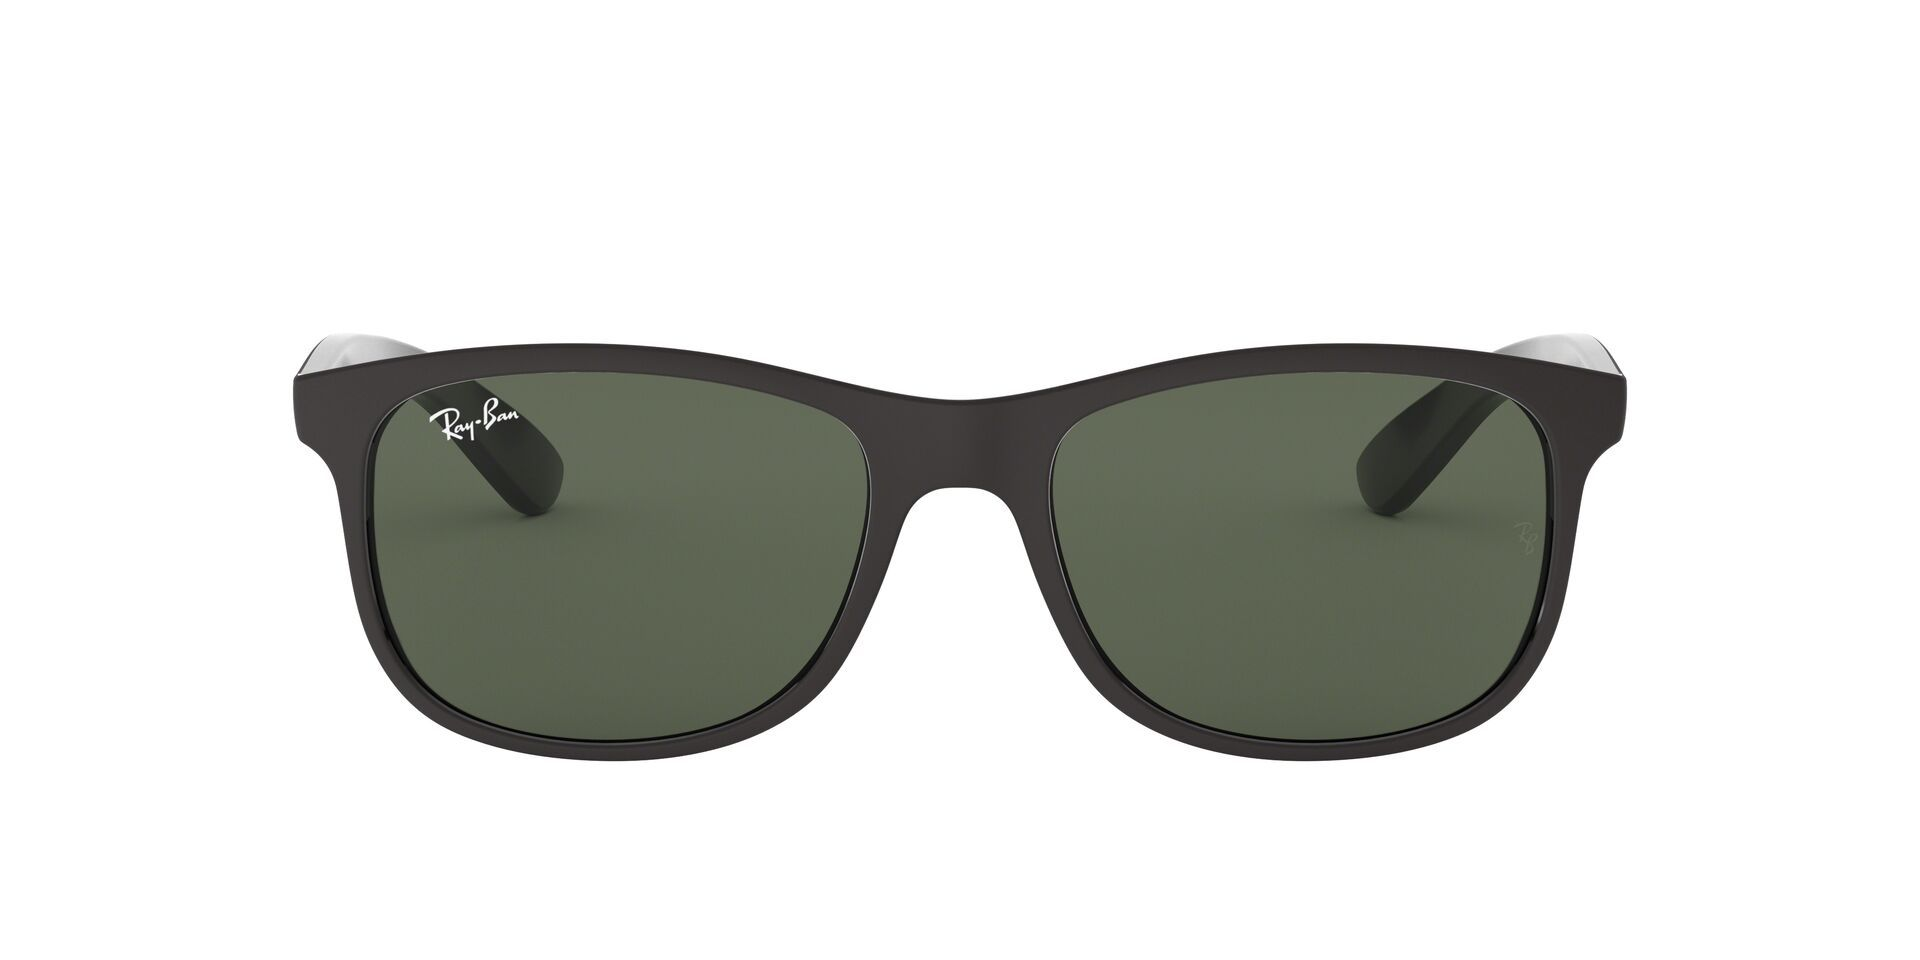 Ray Ban - RB4202 Black Oval Unisex Sunglasses - 55mm